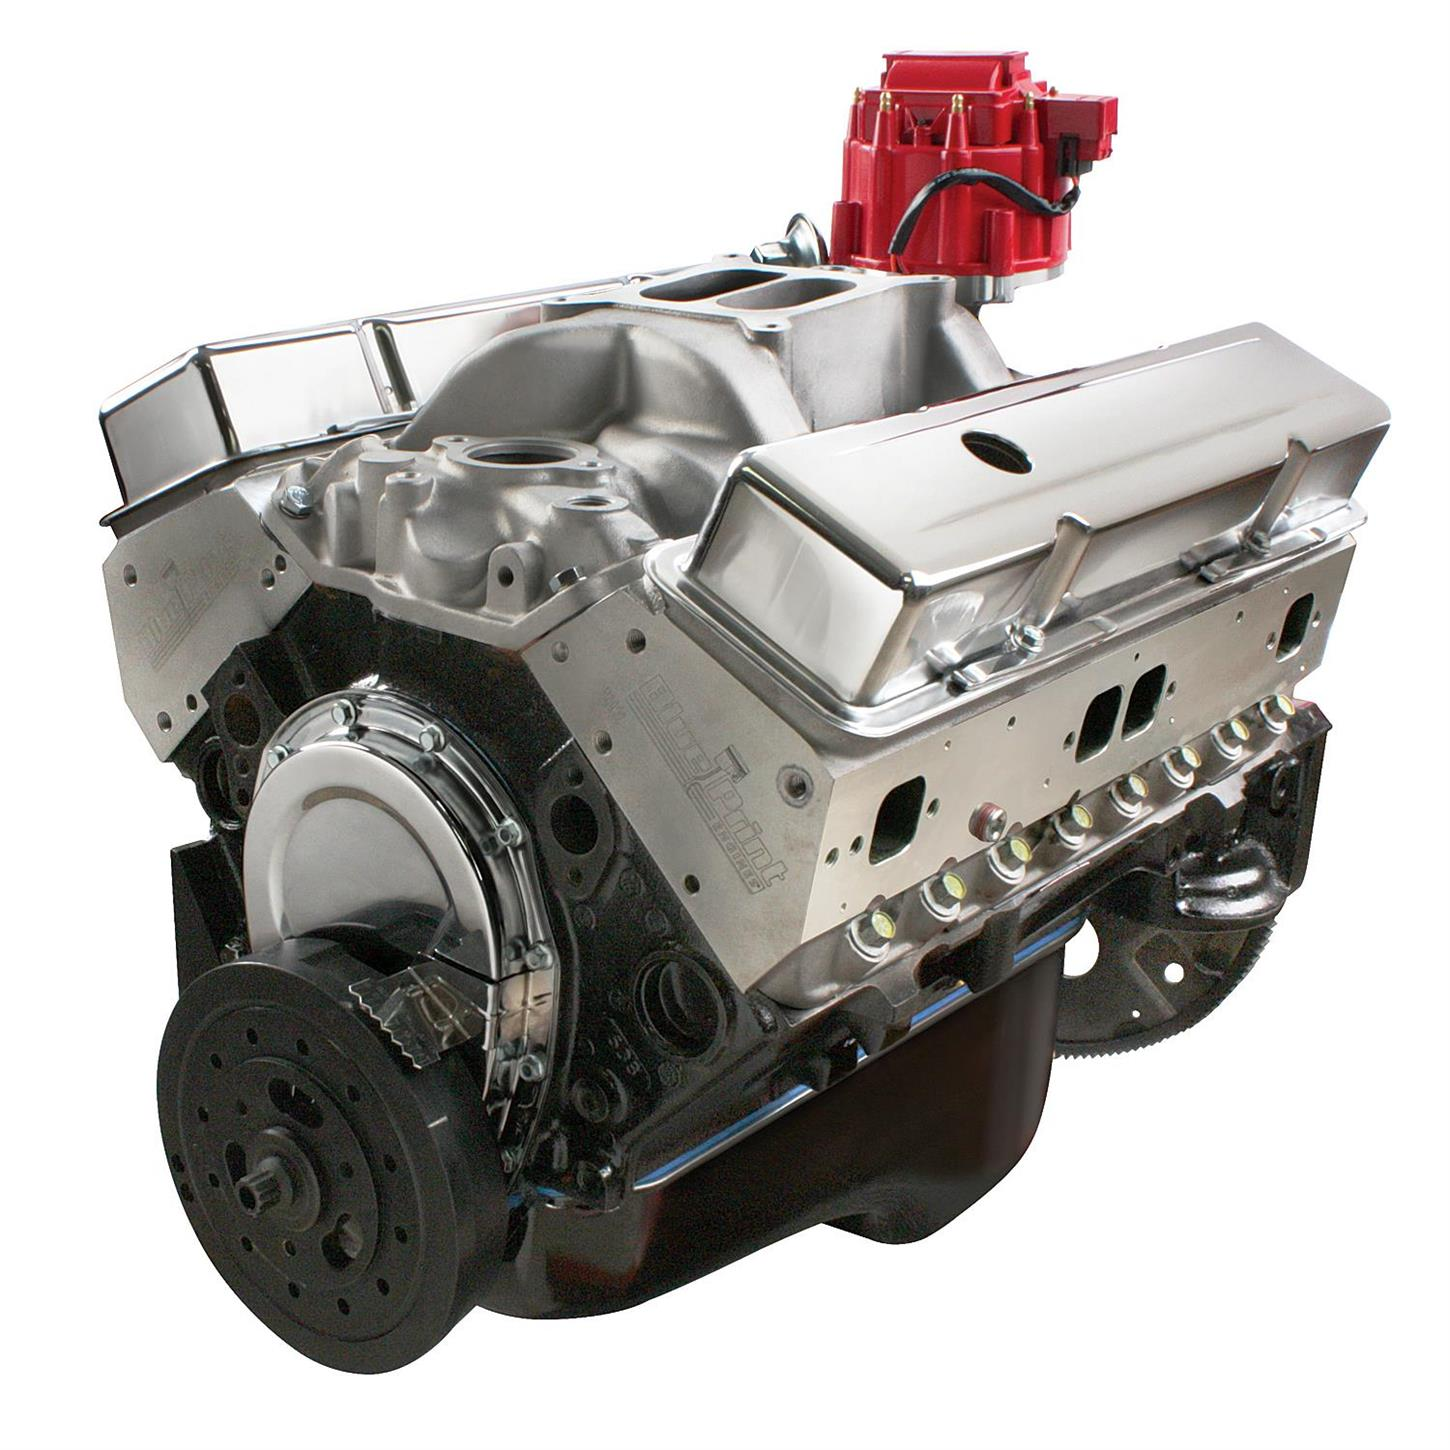 292 chevy engine kit home gt engine kits gt chevy 292 1963 1989 gt chevy - Blueprint 383 Small Block Chevy Crate Engine